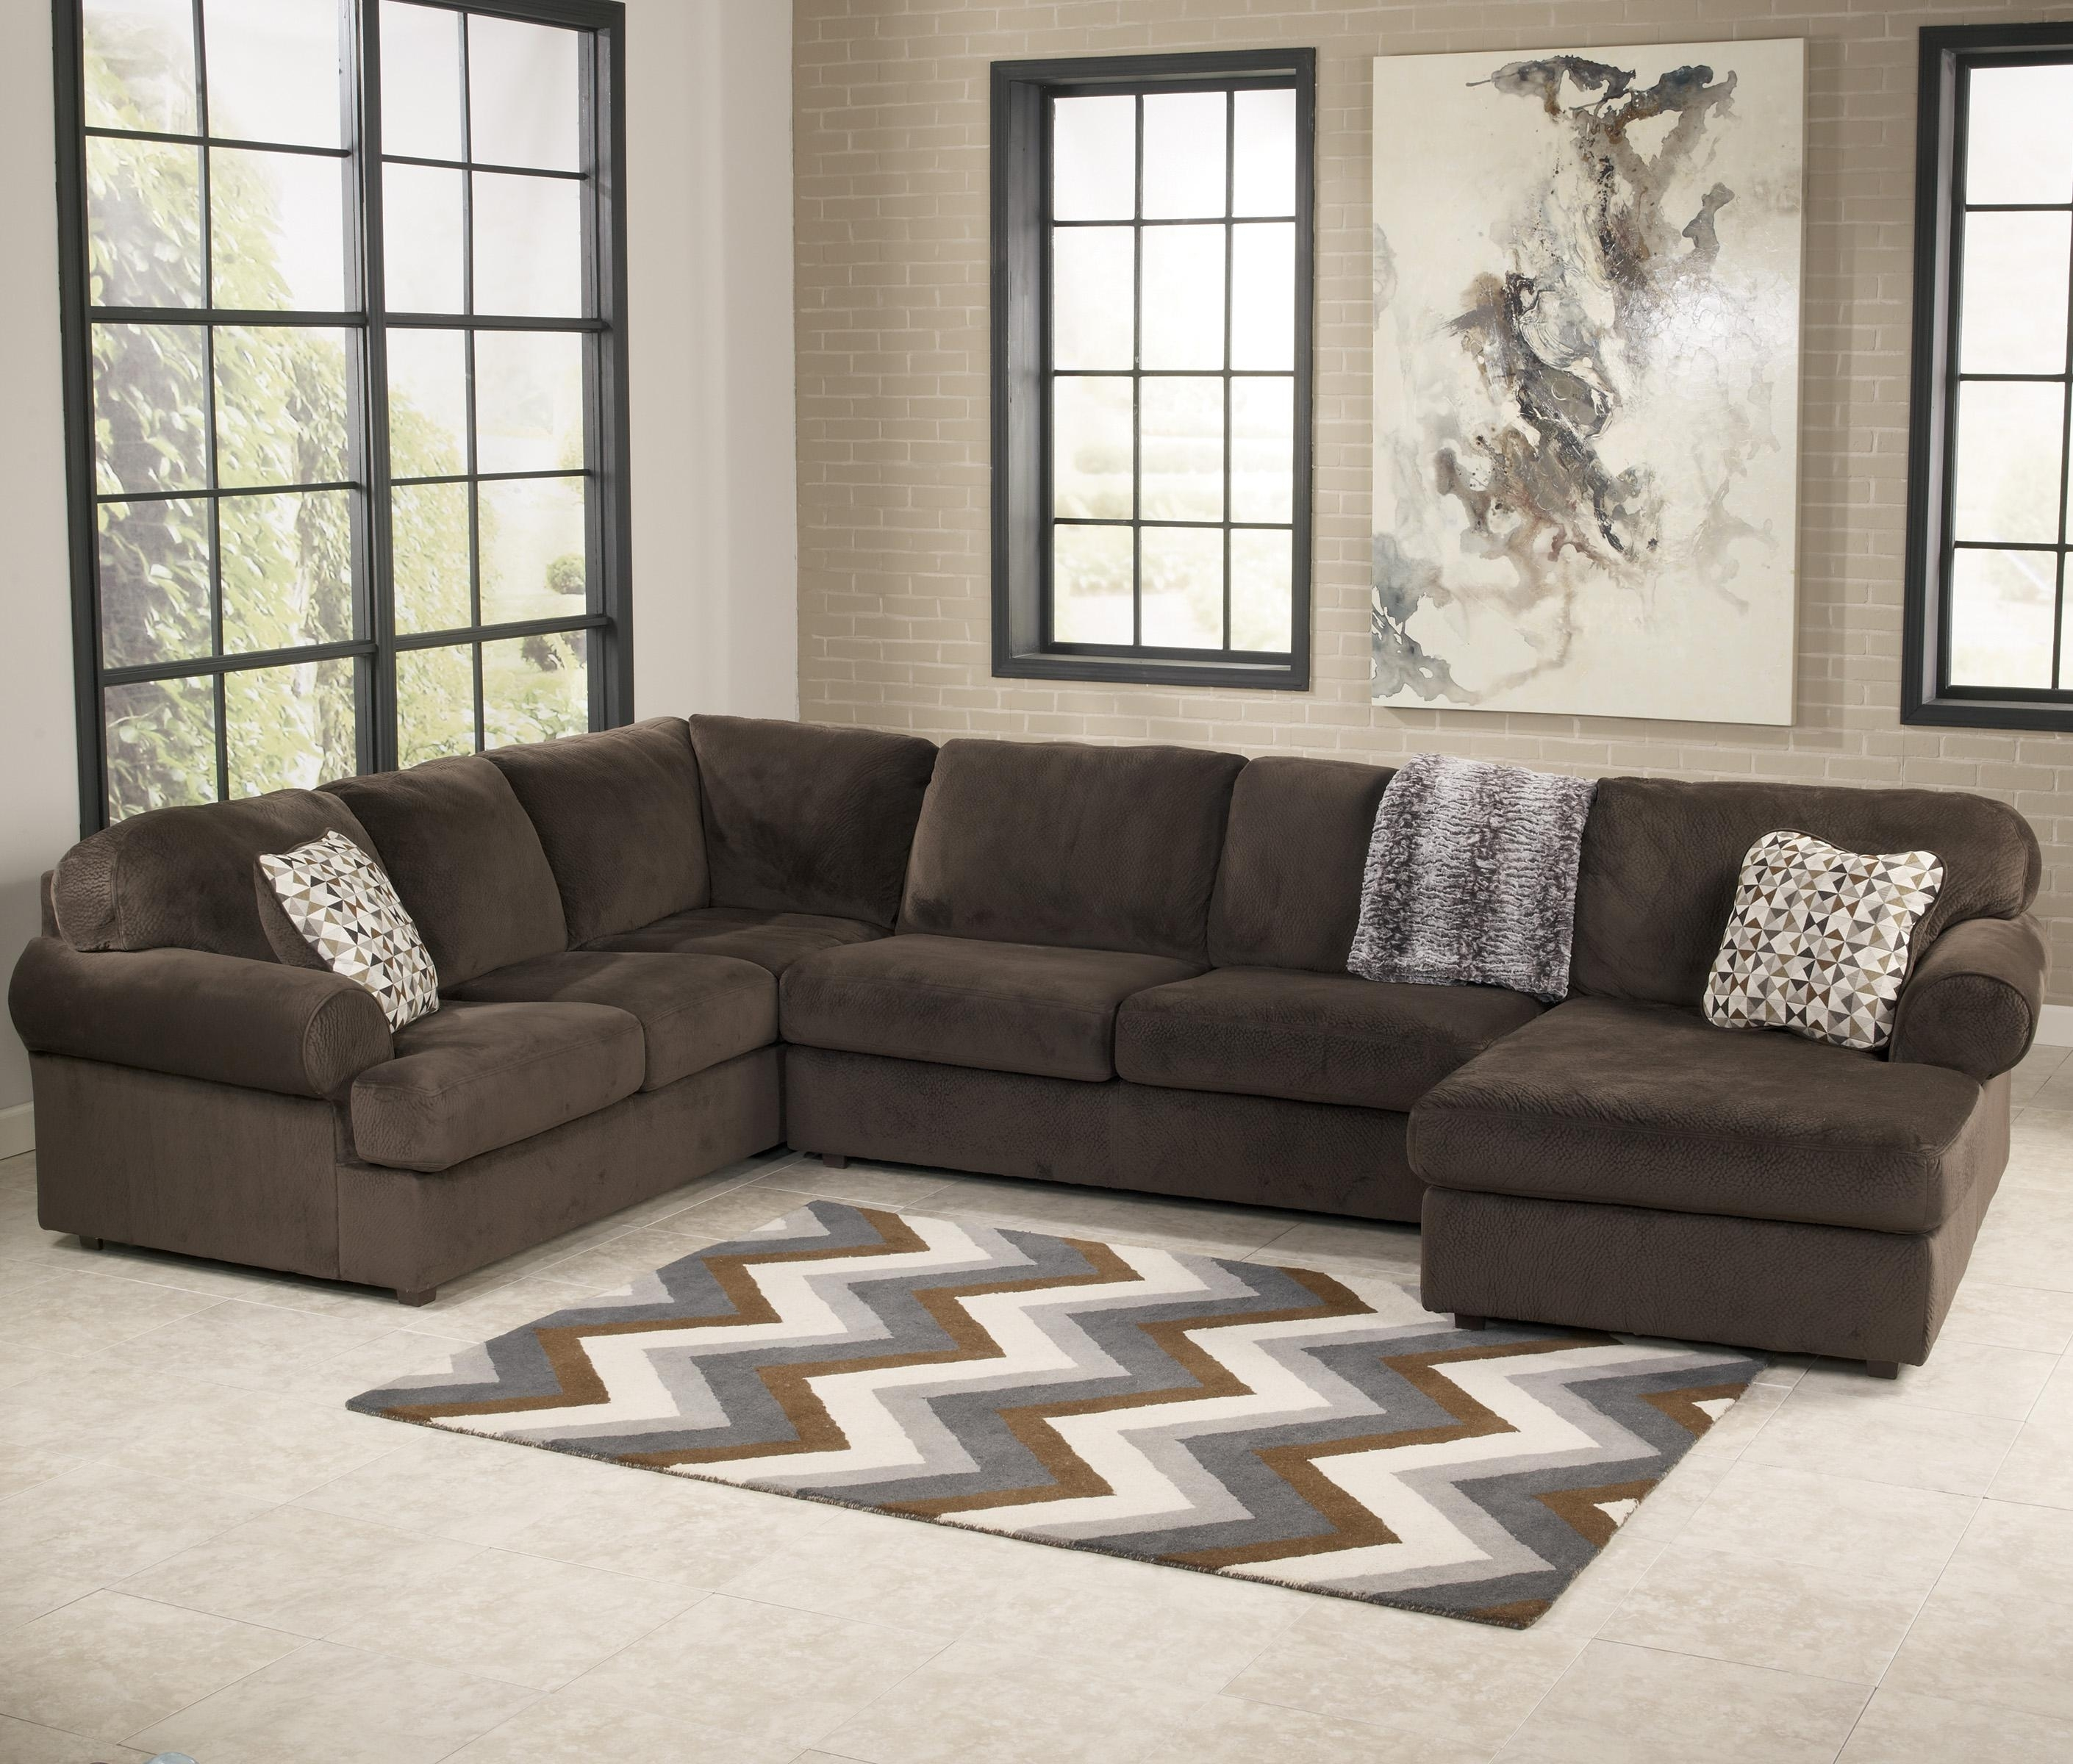 Signature Designashley Jessa Place – Chocolate Casual Sectional In Killeen Tx Sectional Sofas (View 3 of 10)